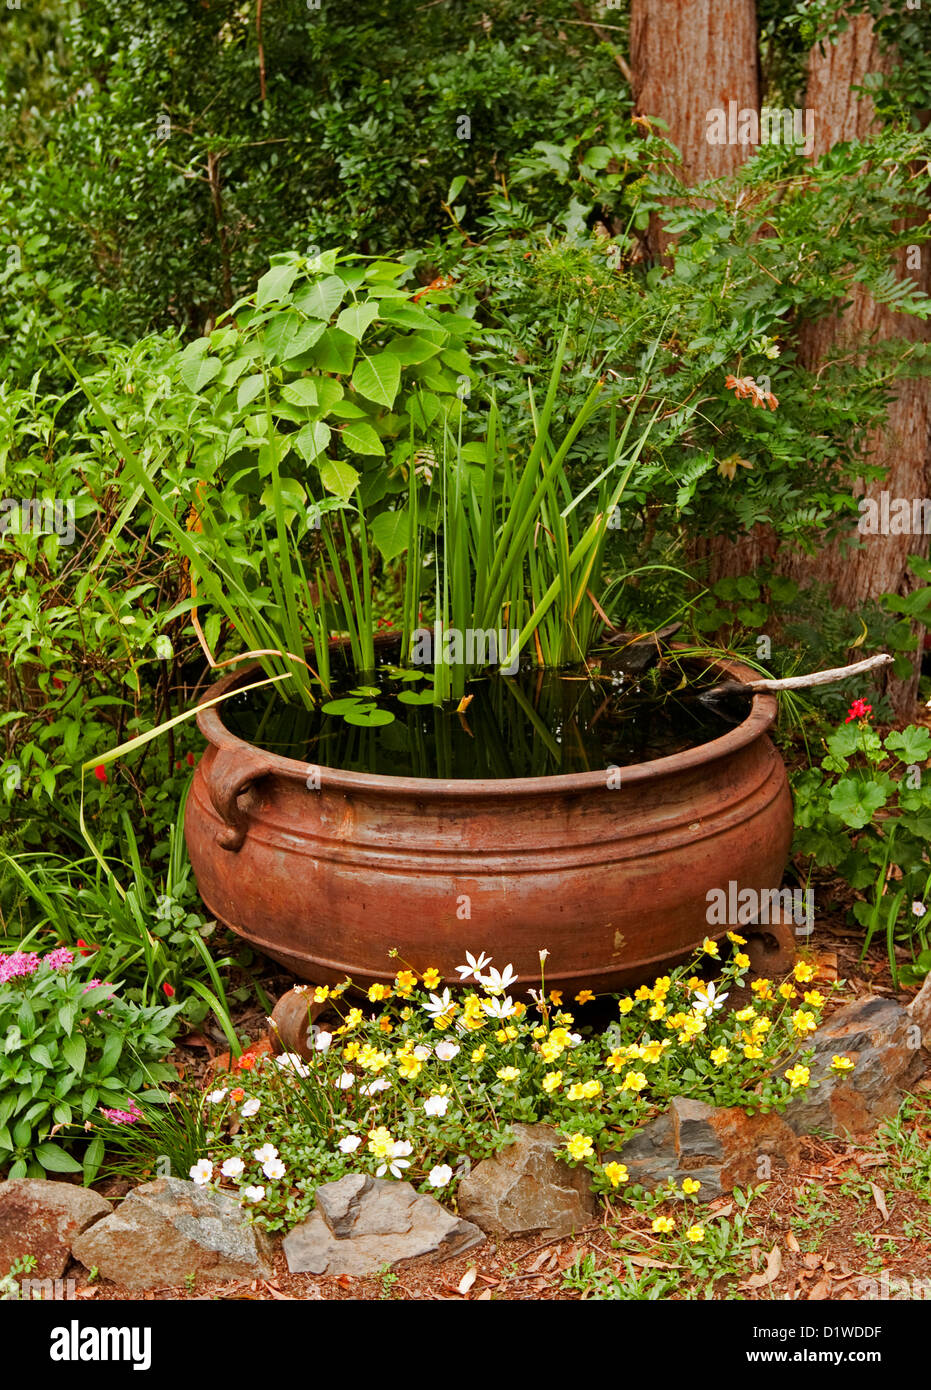 Large rusty cauldron fish pond garden water feature for Large outdoor fish ponds